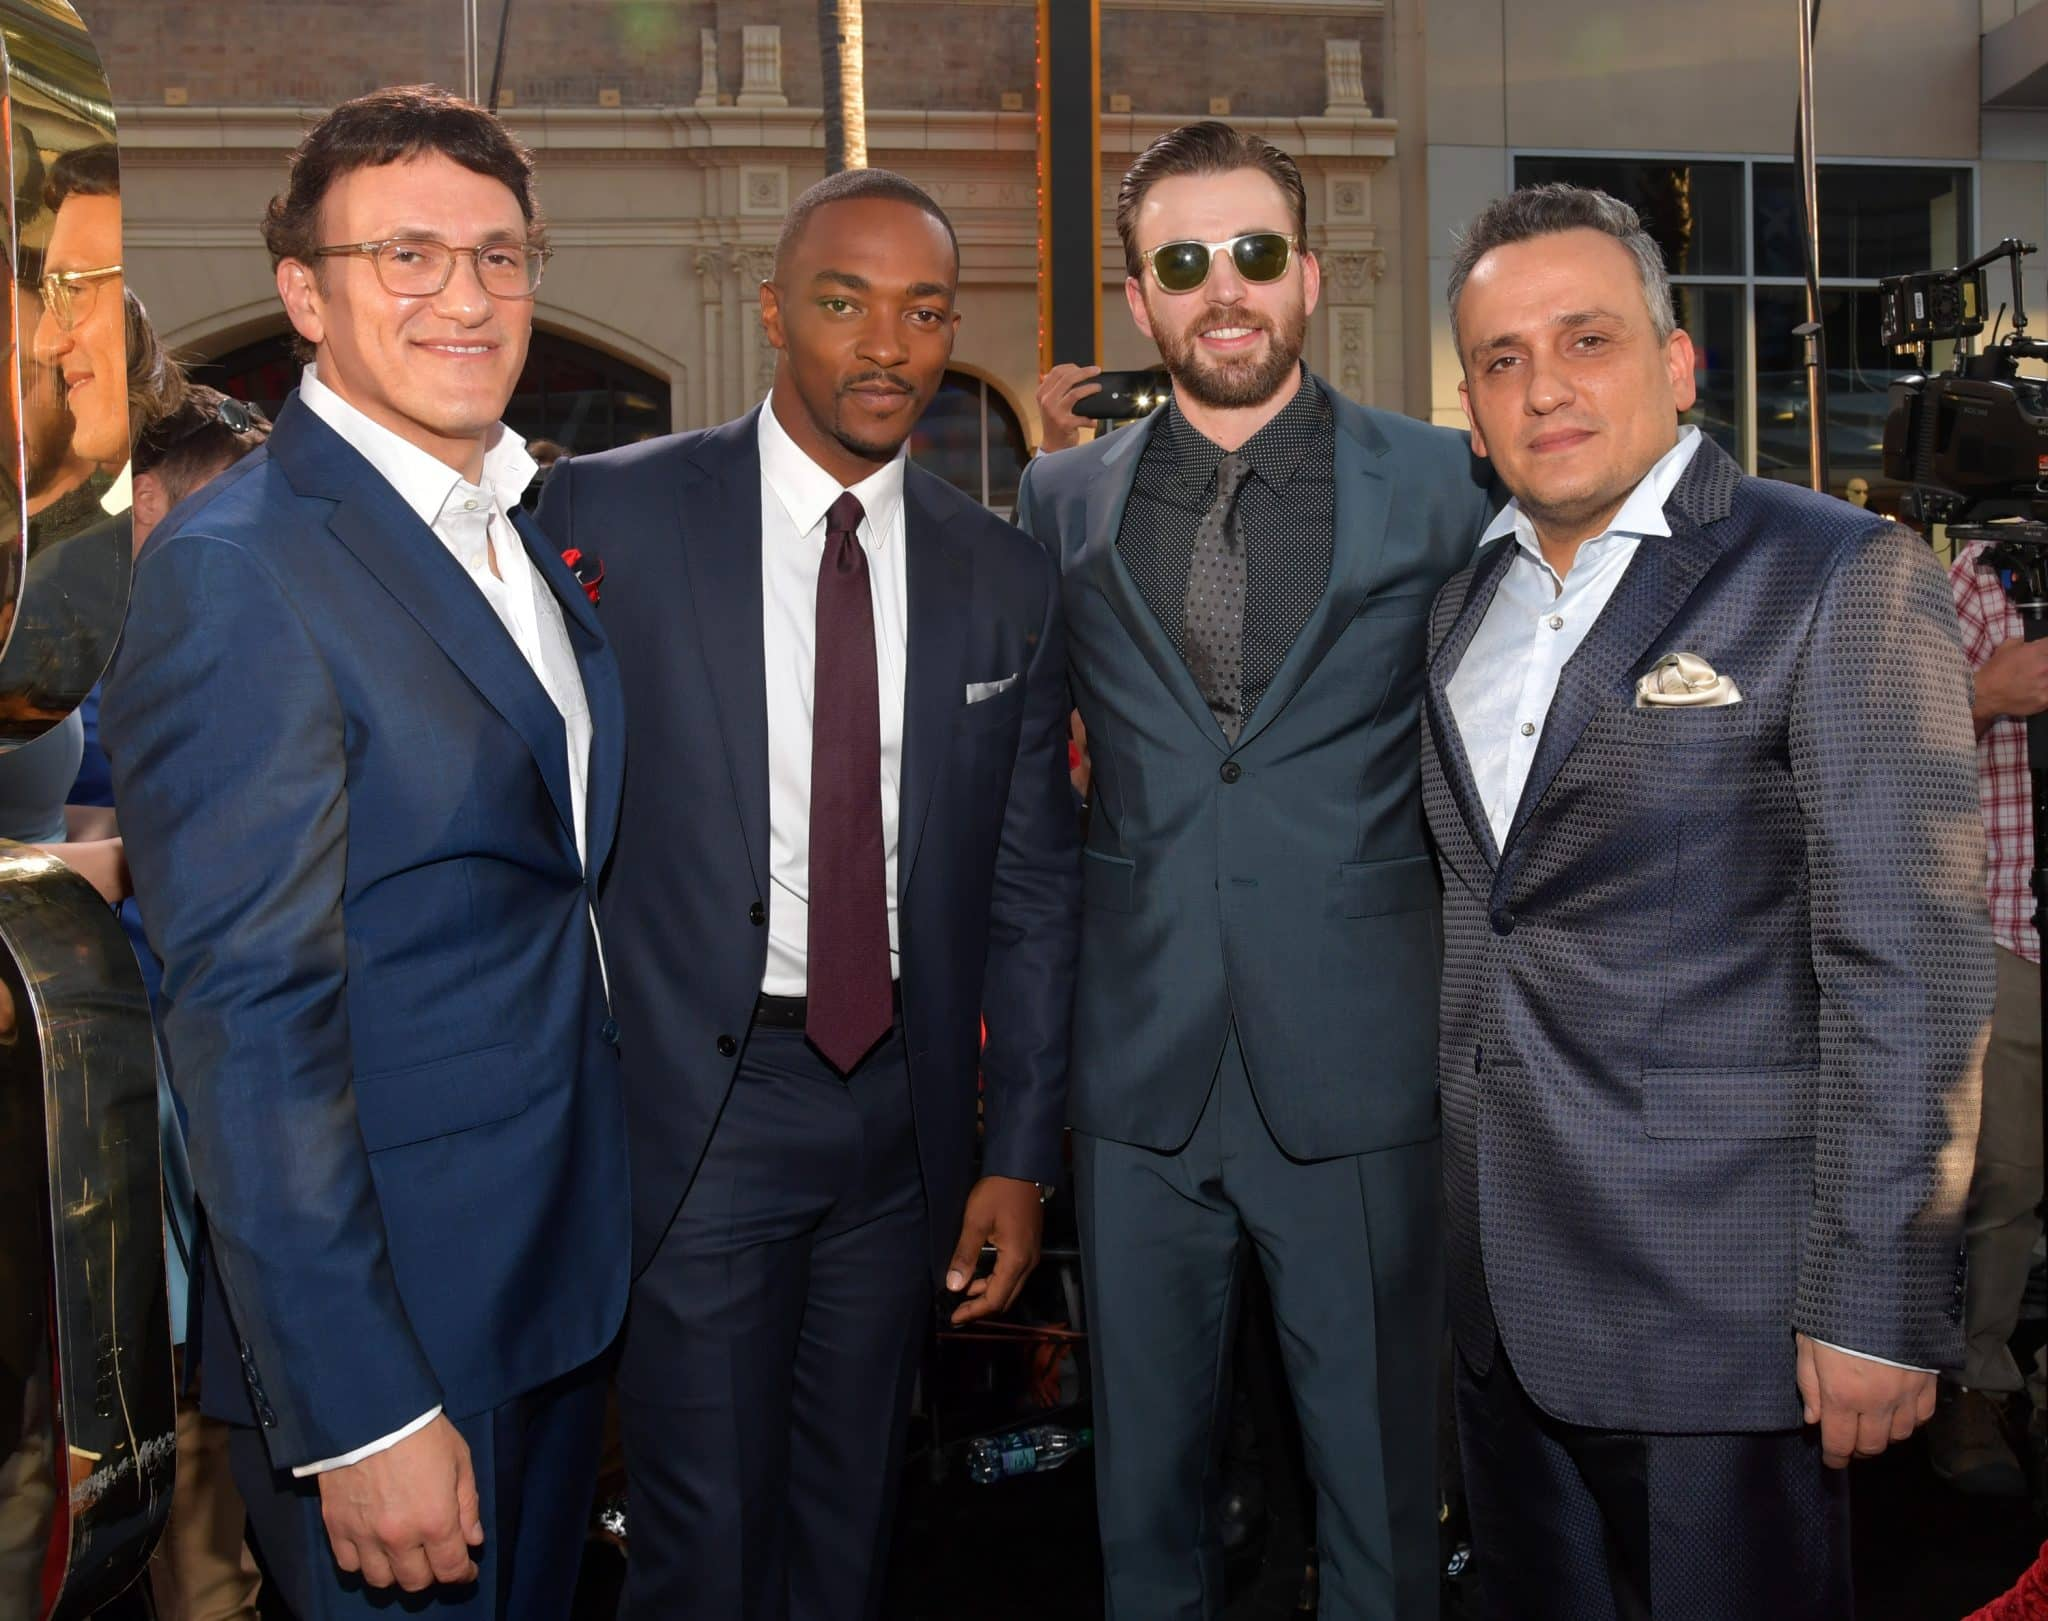 """HOLLYWOOD, CALIFORNIA - APRIL 12: (L-R) Director Anthony Russo, actors Anthony Mackie, Chris Evans and director Joe Russo attend The World Premiere of Marvel's """"Captain America: Civil War"""" at Dolby Theatre on April 12, 2016 in Los Angeles, California. (Photo by Lester Cohen/Getty Images for Disney) *** Local Caption *** Anthony Russo; Anthony Mackie; Chris Evans; Joe Russo"""